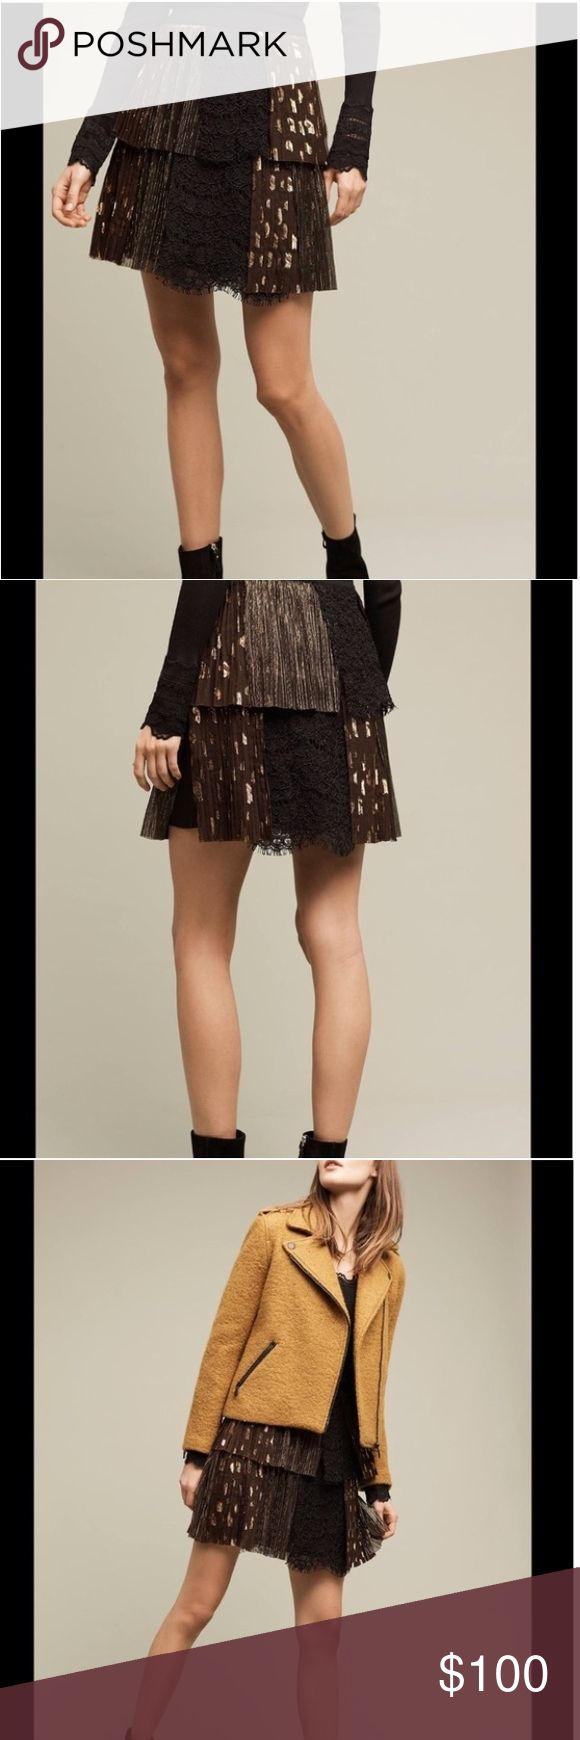 """NWT AnthroHARLYN SOHO Mini Skirt Black Gold Tiered NWT!! """"Soho Mini Skirt"""" ~ Layered or Tiered Style ~ Some of the Layers are Pleated Black with Gold """"Spots"""" ~ Other Layers are a Solid Black Floral lace ~ Some Layers are a Gold Lace ~ Has a Solid Black 1 1/2"""" Waistband... with a Zipper down the Left Side ~ Fully Lined ~ Above-Knee Mini Length Fabric:  Shell:  100% Rayon ~ Contrast 1: 70% Nylon 30% Cotton ~ Contrast 2: 100% Polyester ~  Lining:  100% Rayon Front of the Waist:  13"""" Waistband…"""